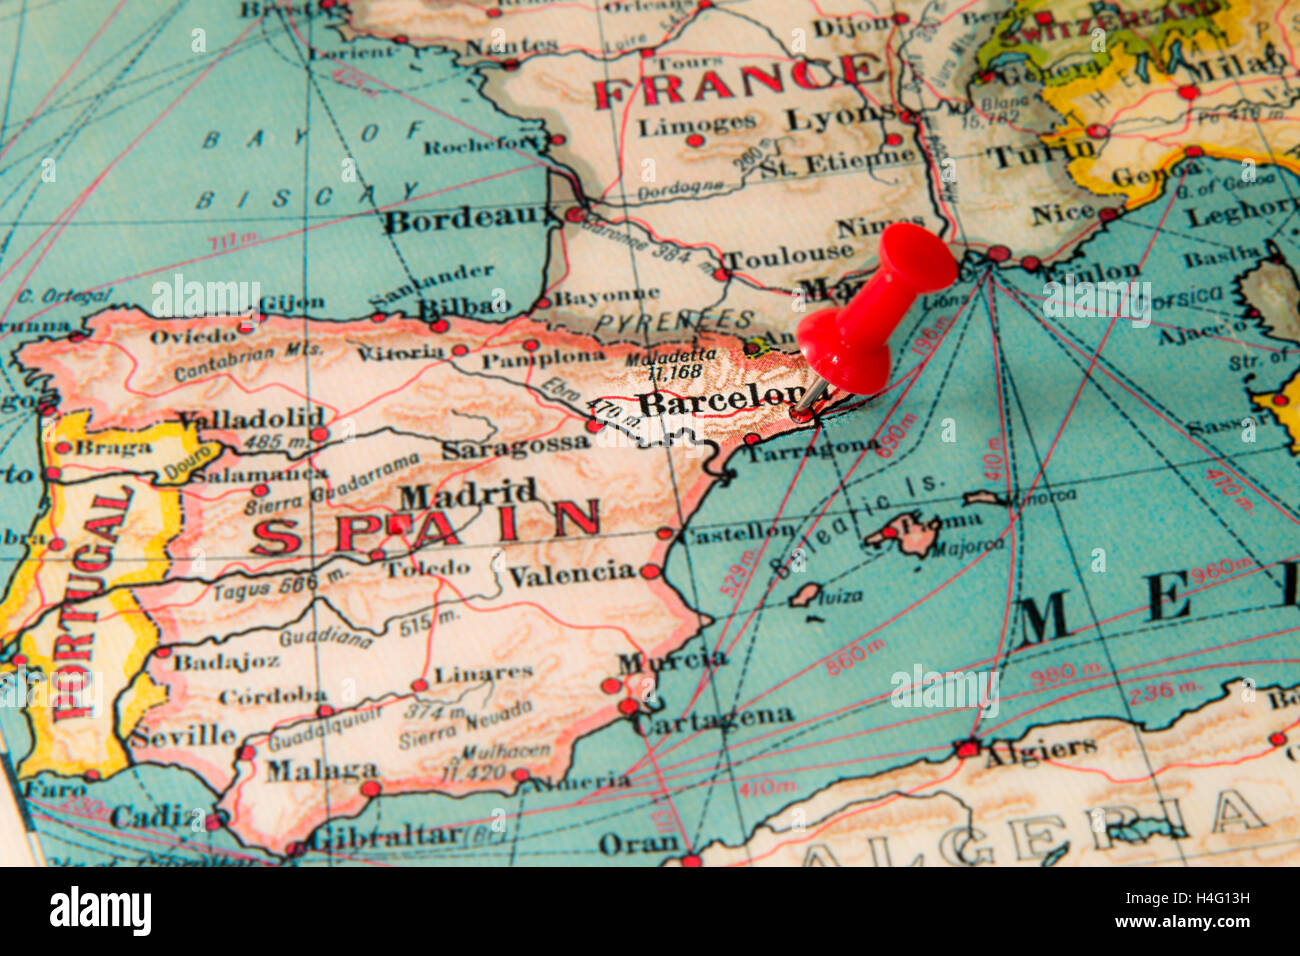 Barcelona Spain Pinned On Vintage Map Of Europe Stock Photo Alamy